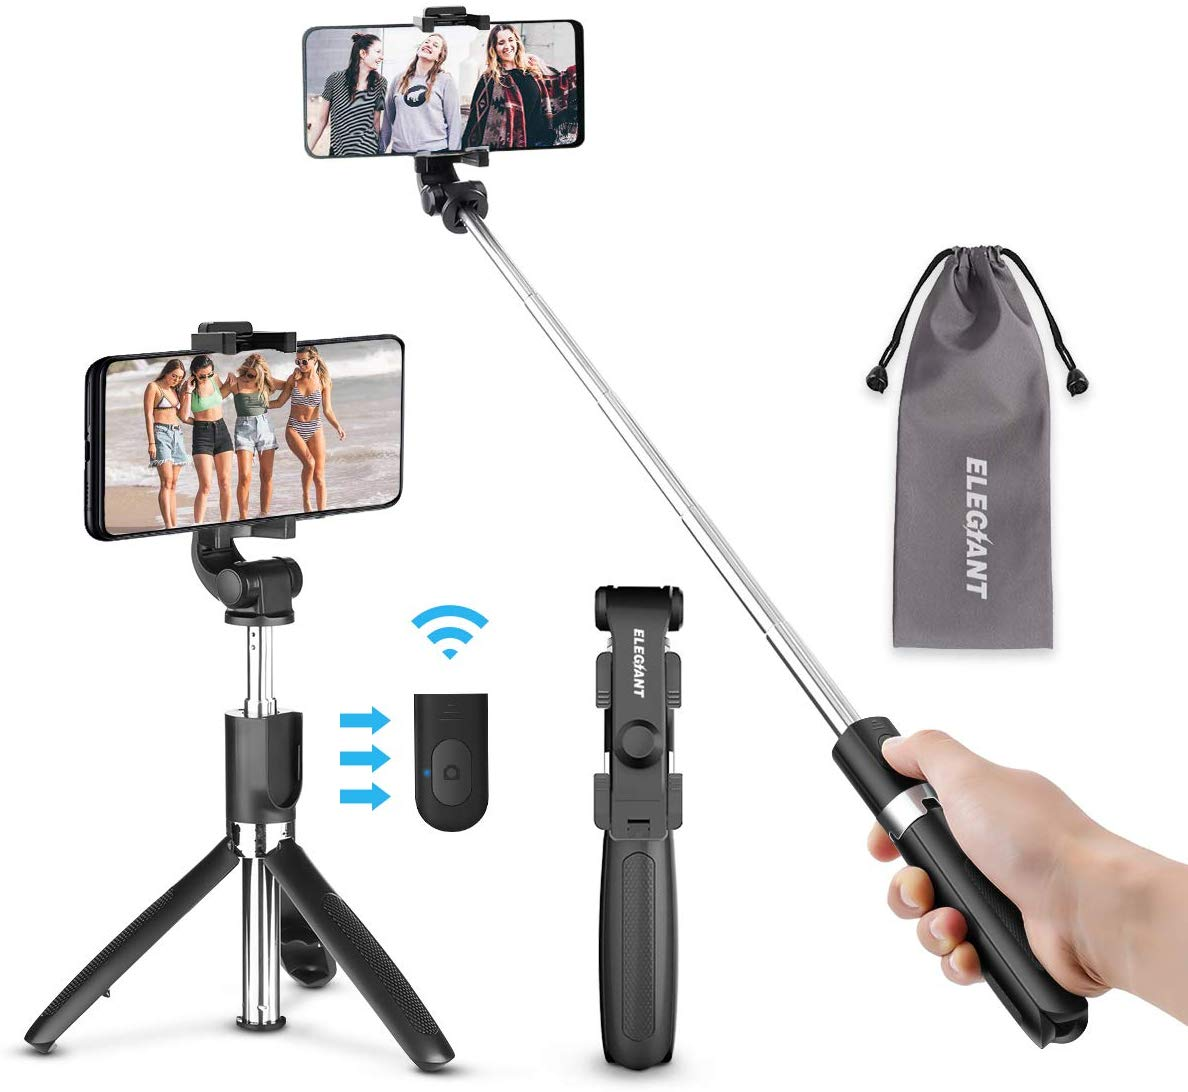 ELEGIANT Bluetooth Selfie Stick Tripod, Mini Extendable Selfie Stick with Wireless Remote and Tripod Stand 3 in 1 360 ° Rotation